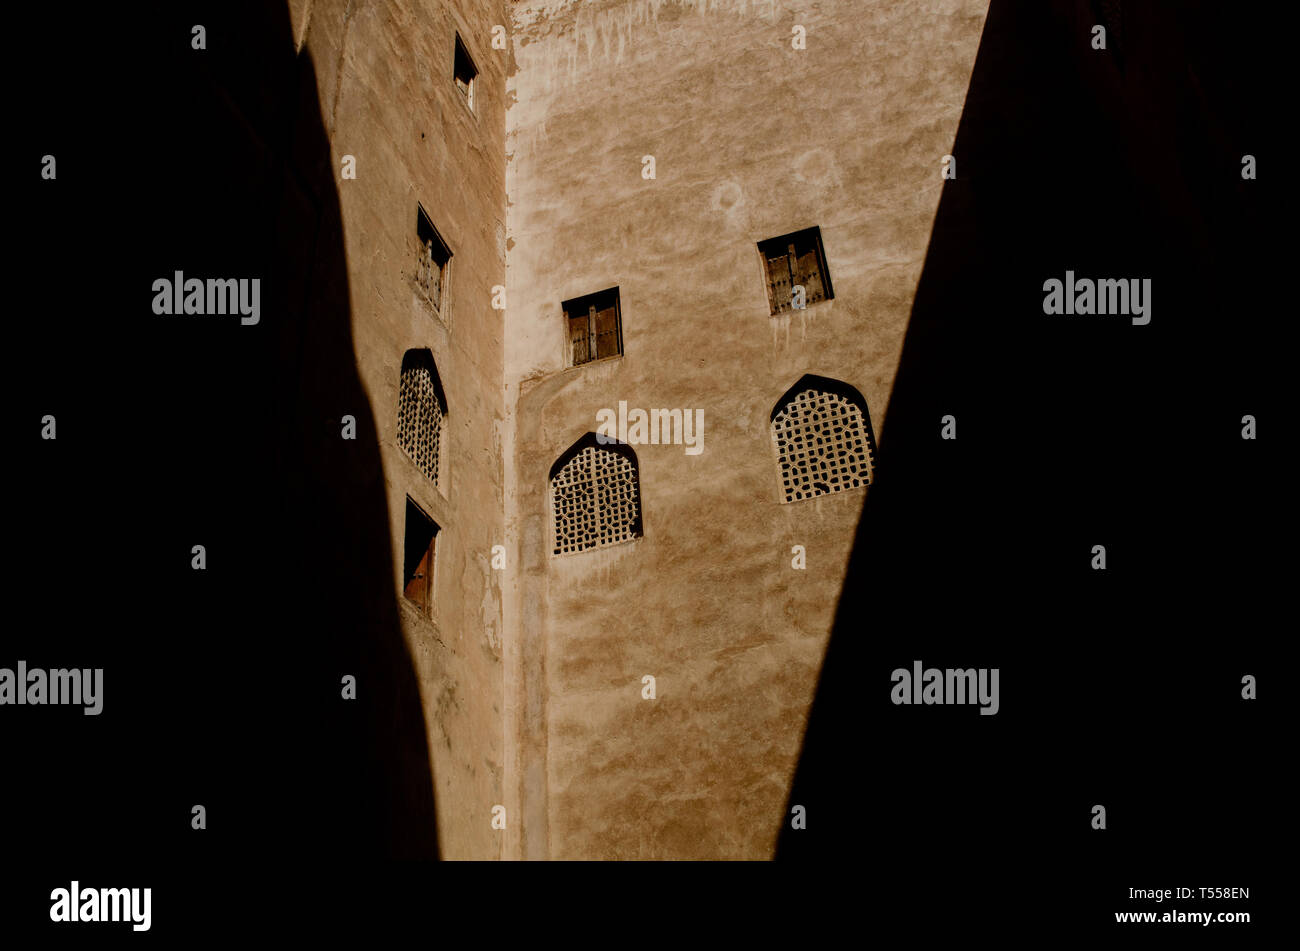 Jabreen or Jibreen Castle A 17th Century Omani fort near Bahla in Al Dakhiyah governorate Oman. Stock Photo